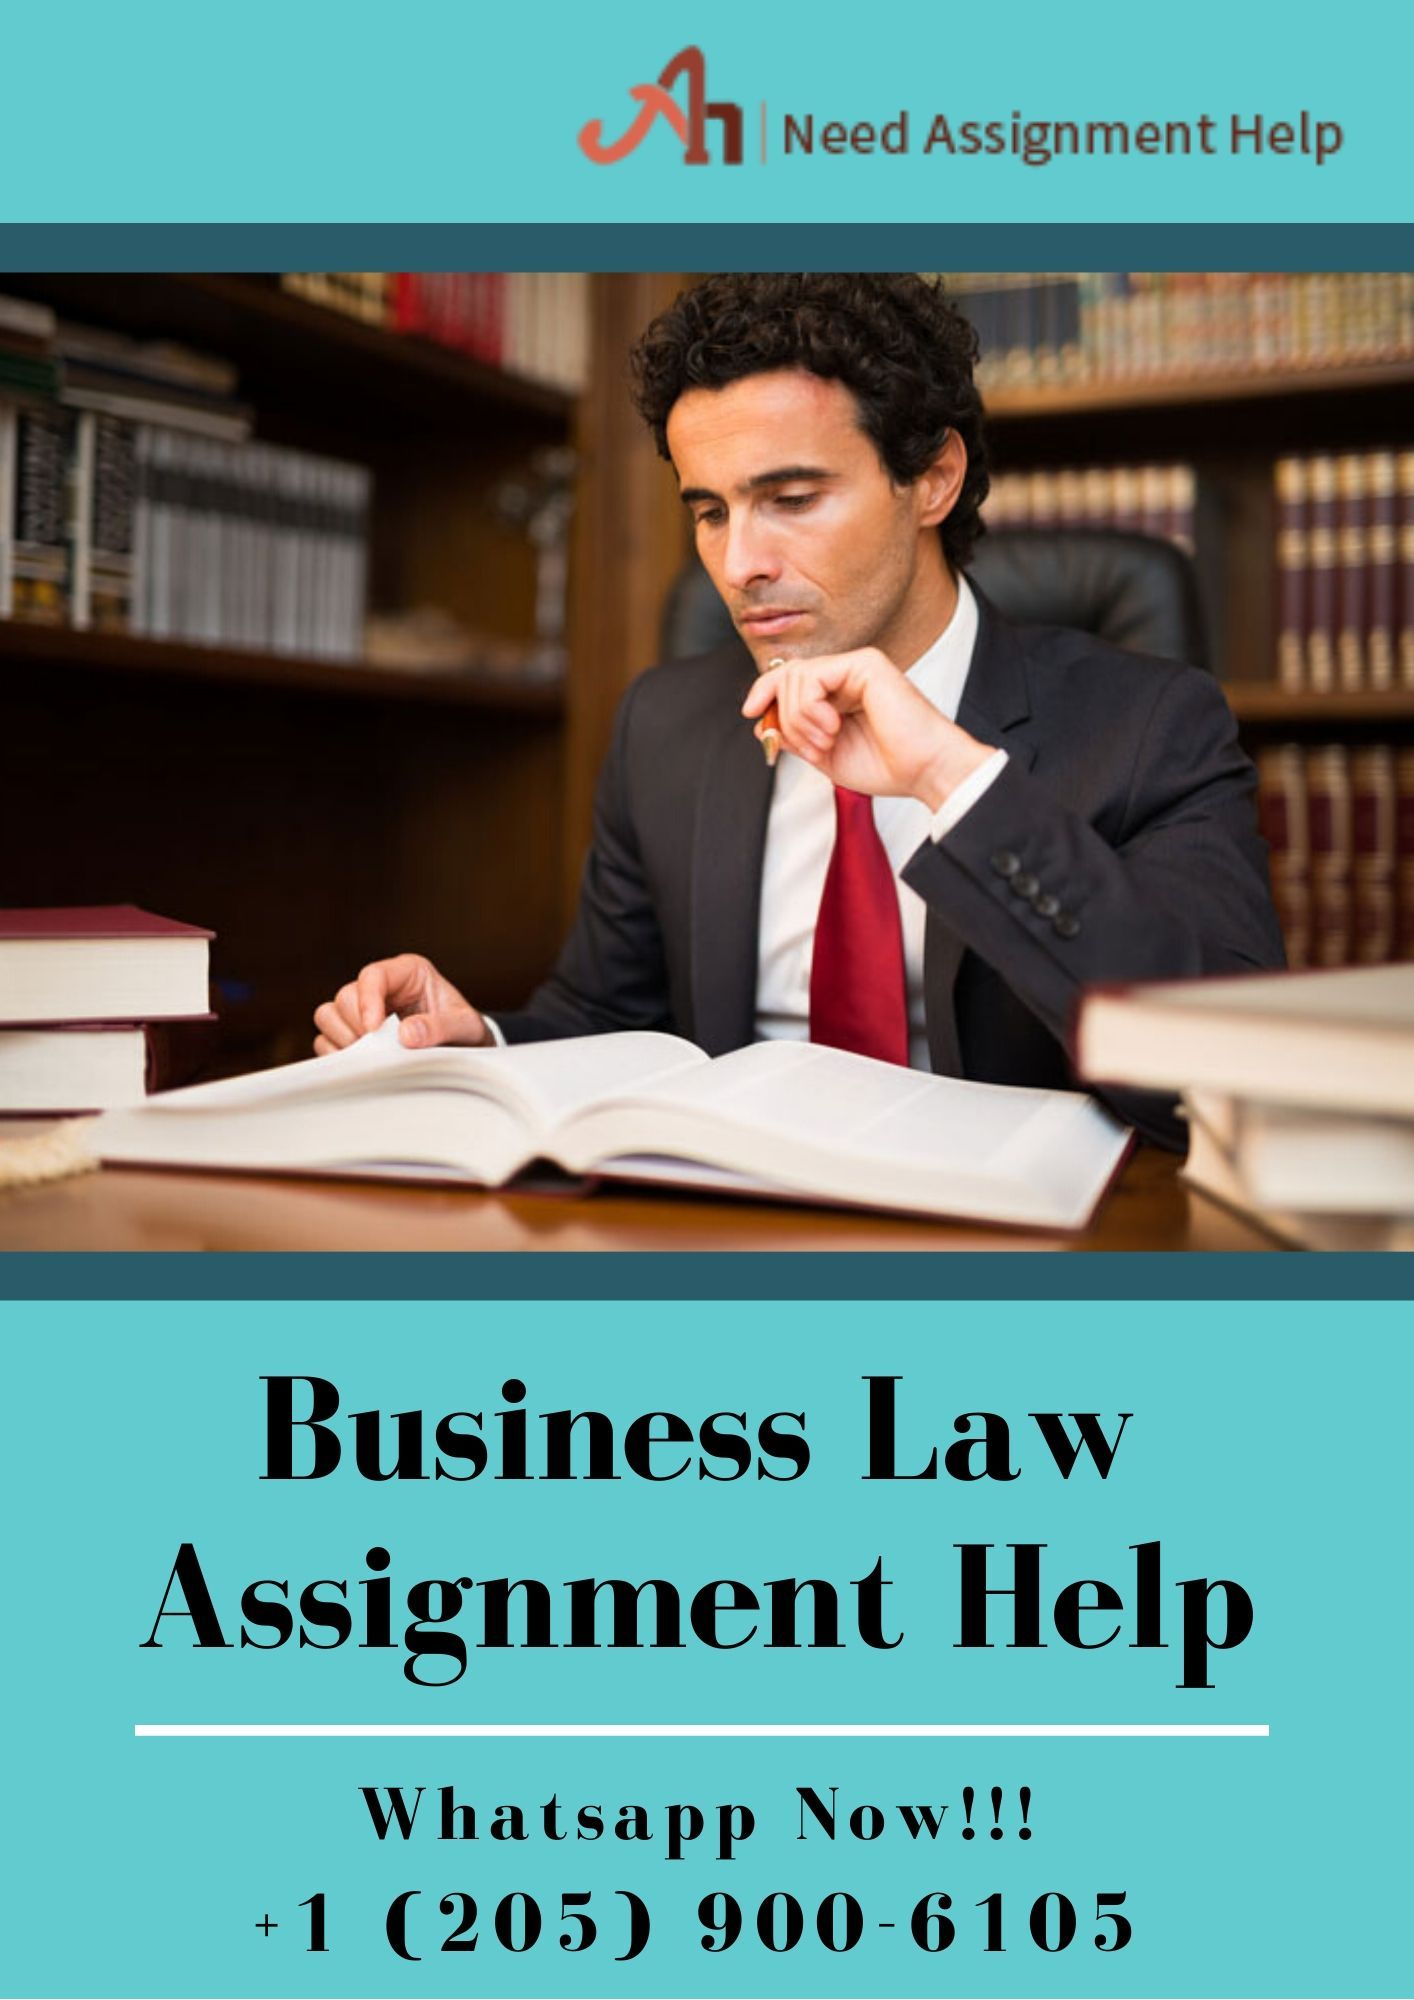 Online Law Assignment Help & Writing Services in Australia